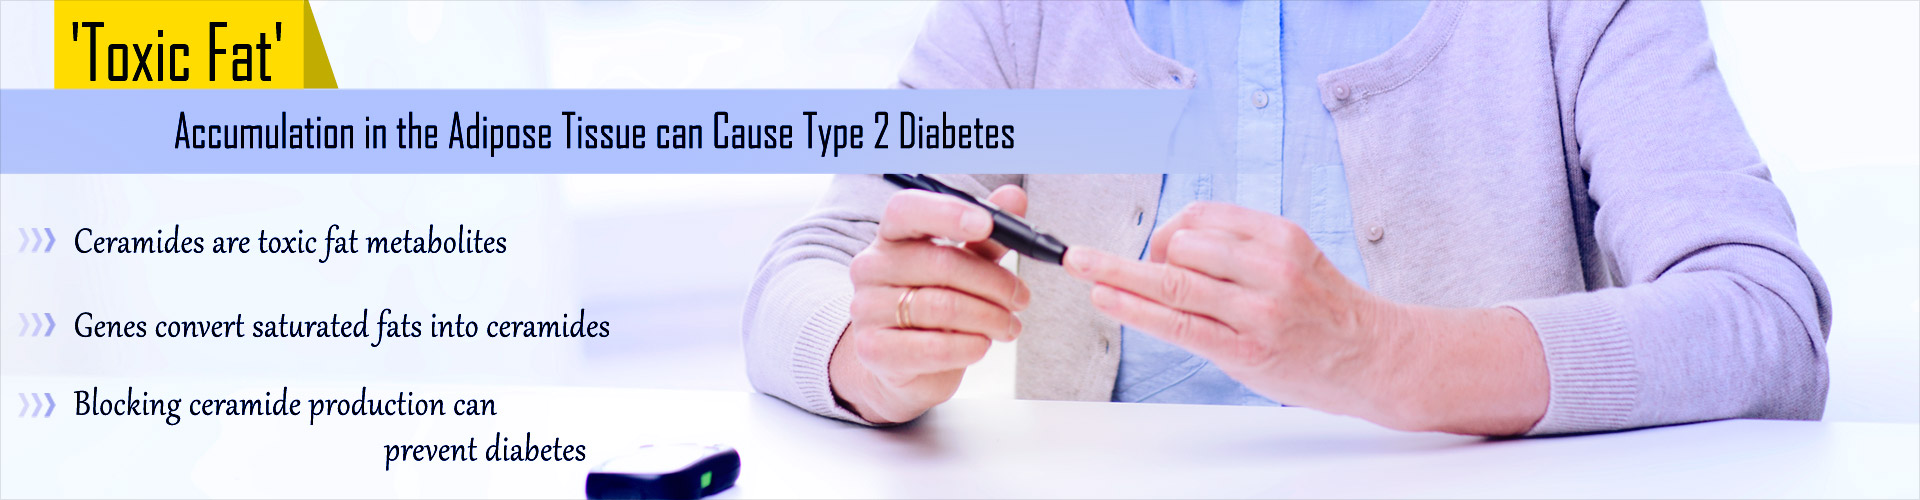 Type 2 Diabetes Risk Linked to Buildup of Toxic Fat Metabolites